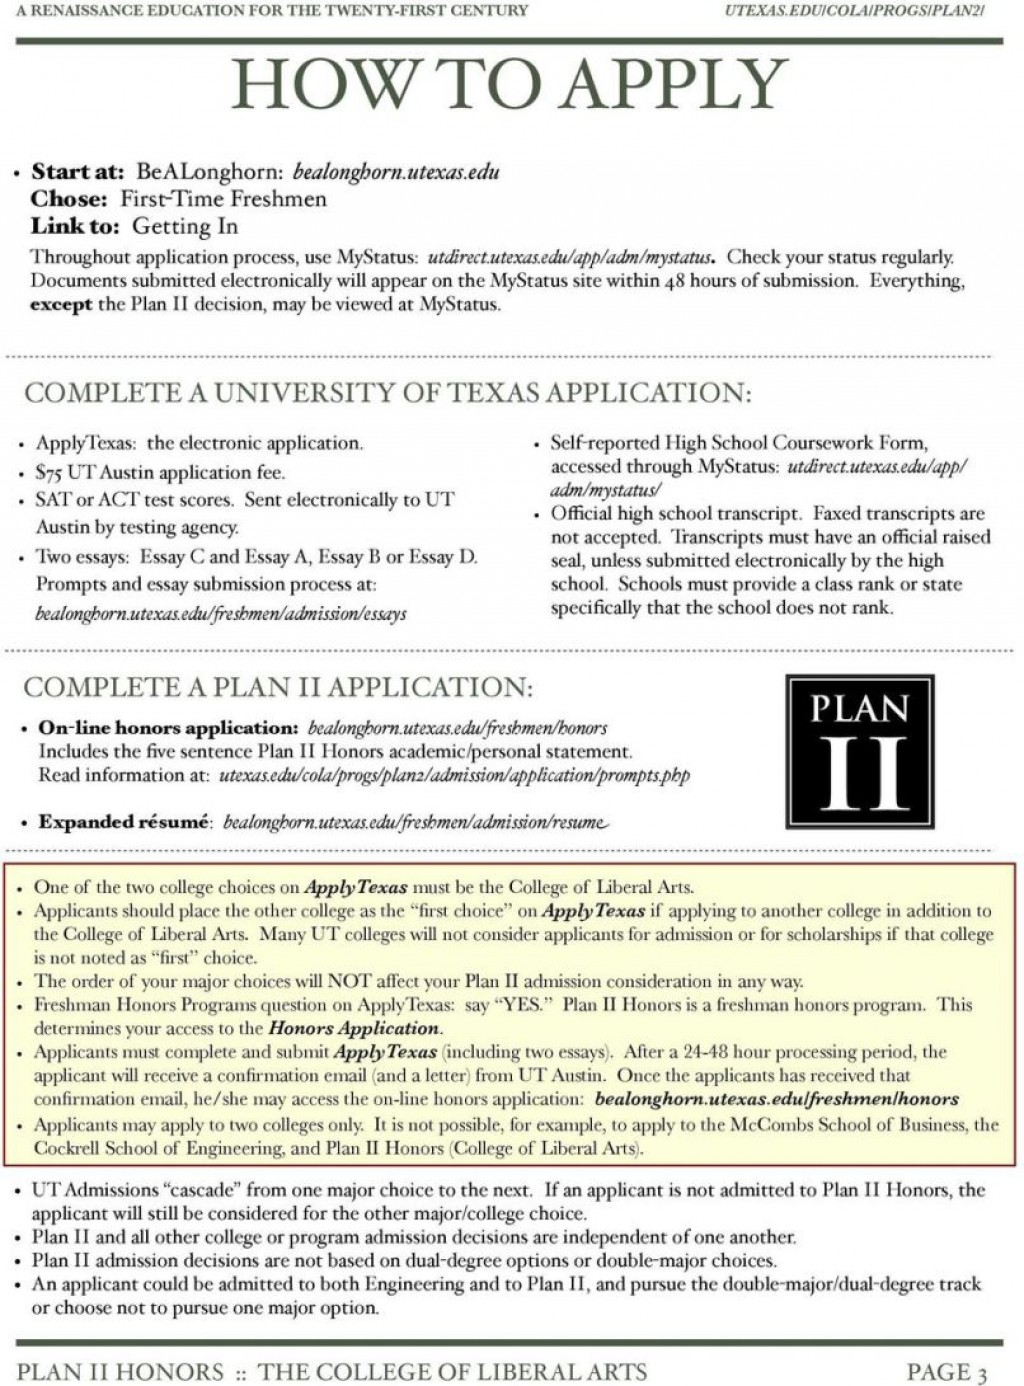 011 Apply Texas Topic Essays Applytexas Prompts Poemdoc Or P Striking A Essay Examples C College Large